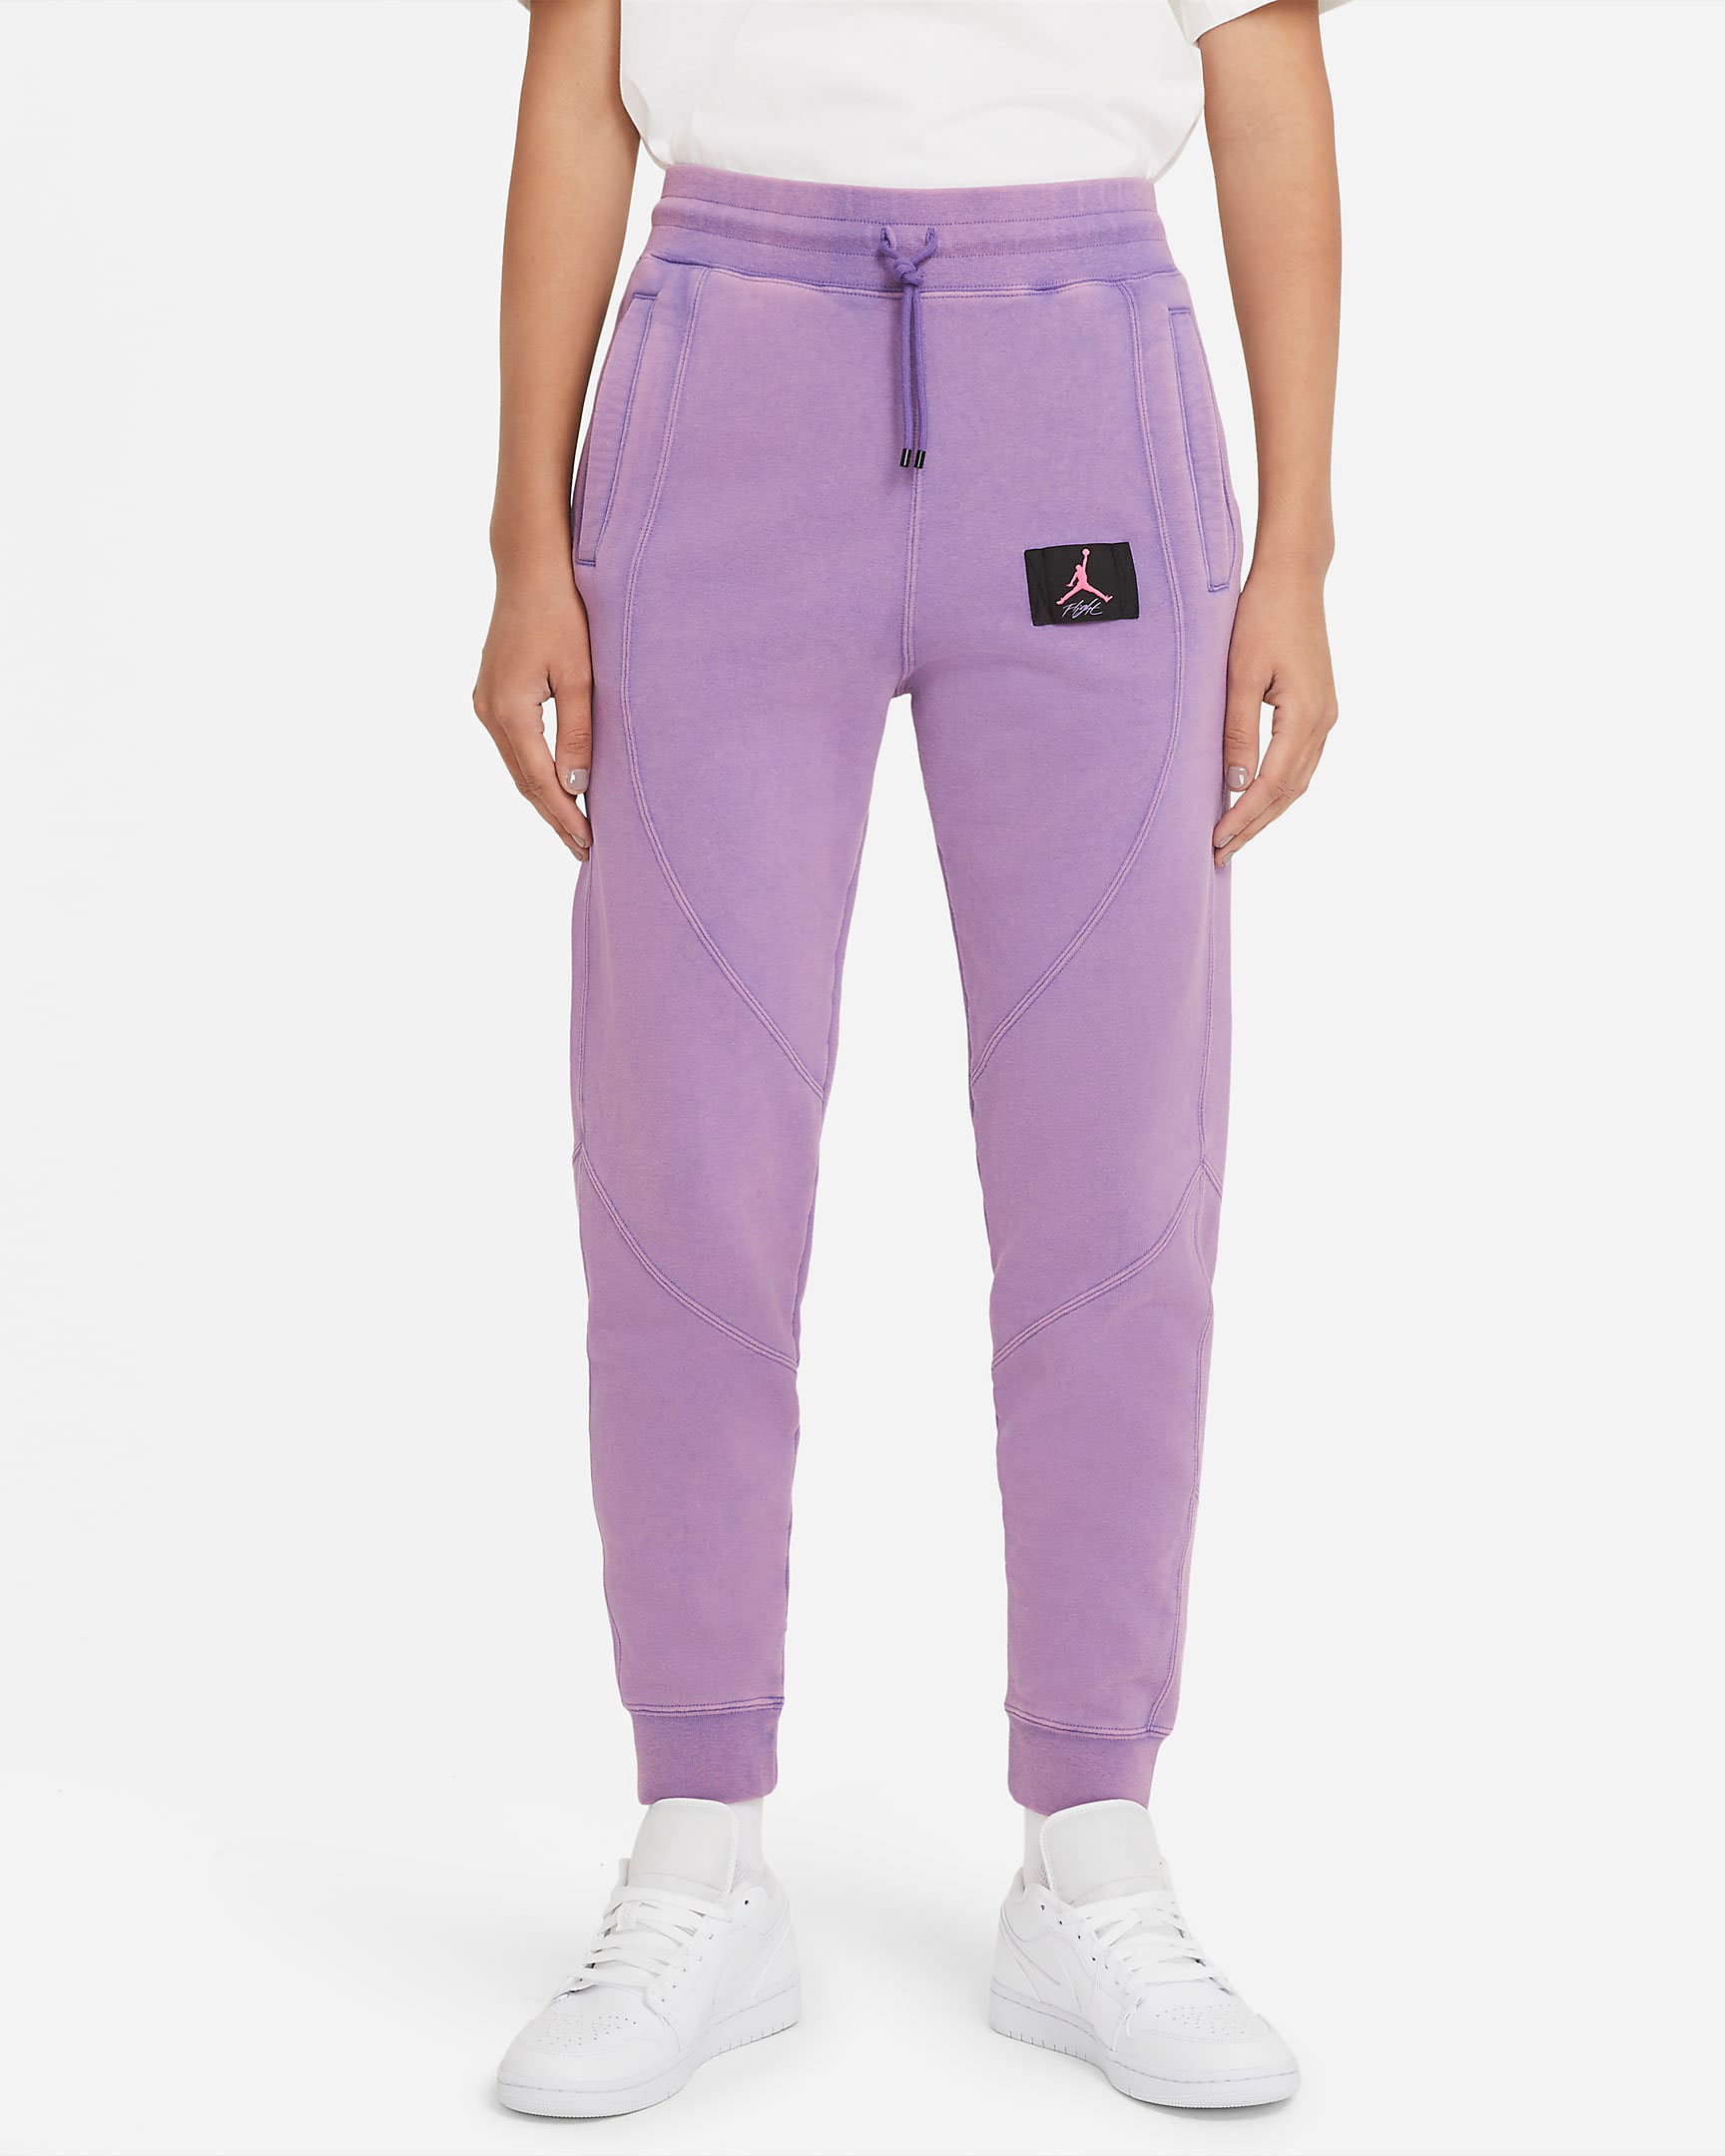 jordan-flight-womens-pants-purple-pink